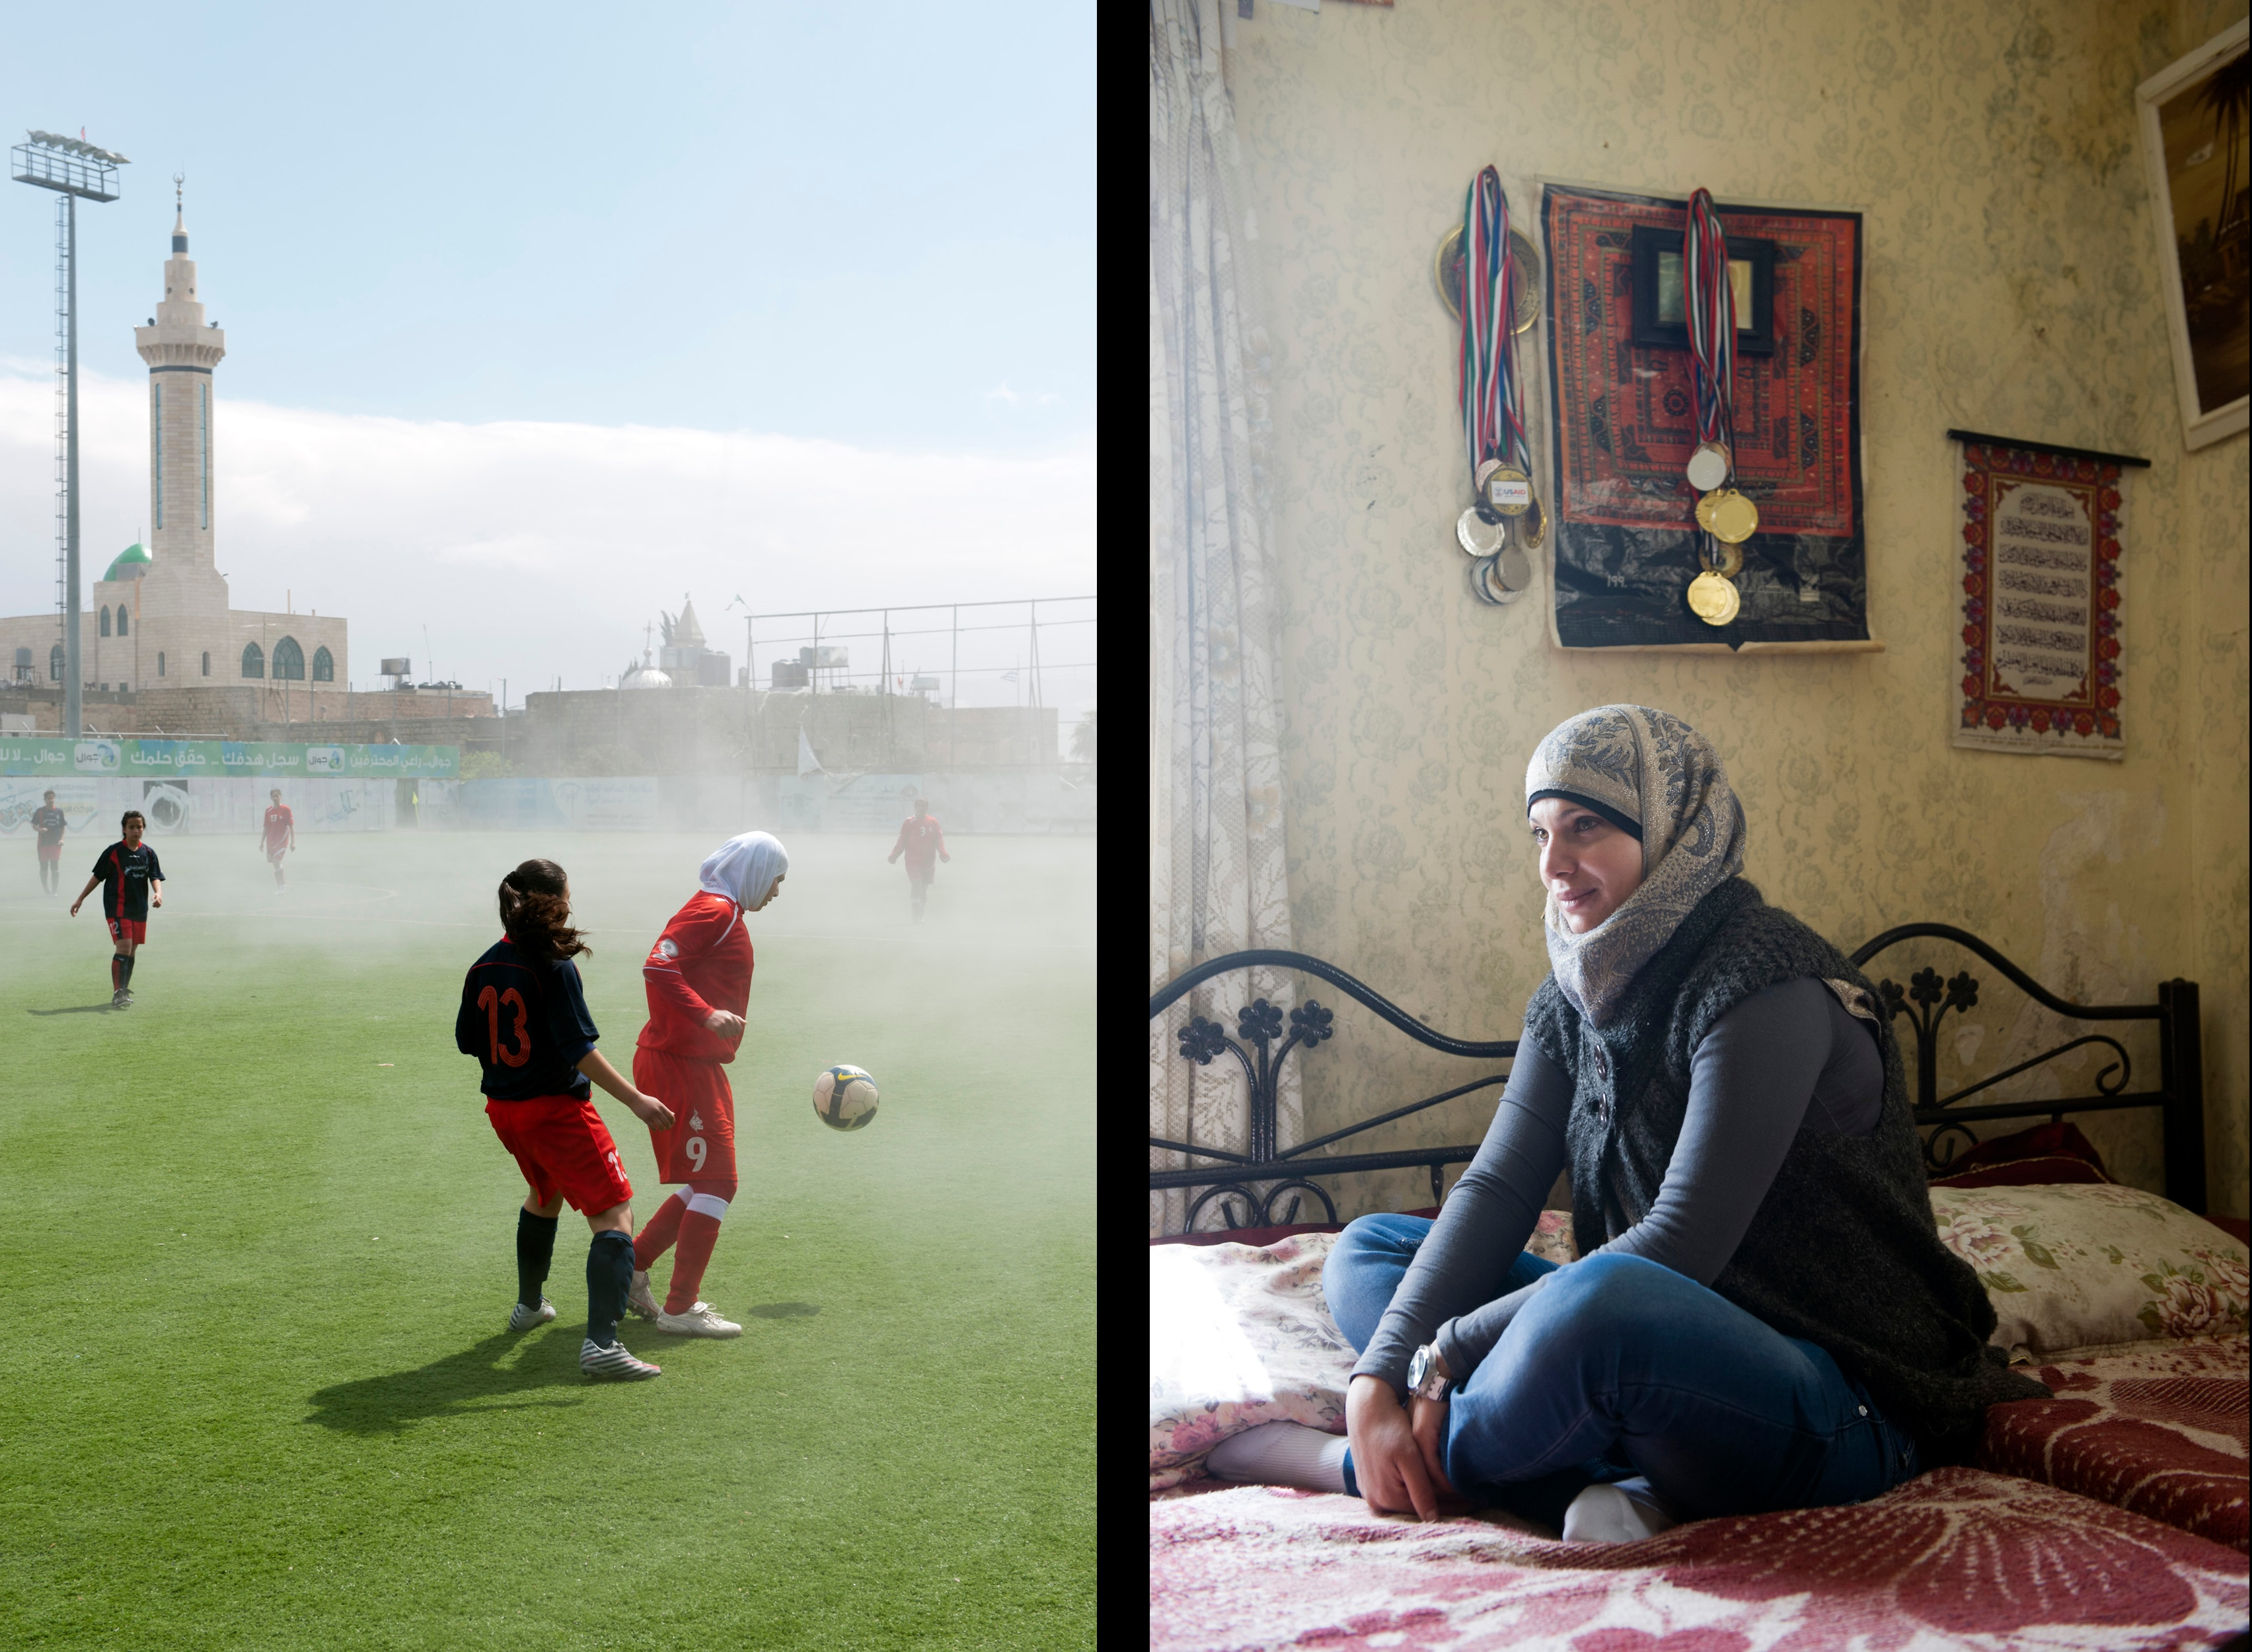 Diyar Bethlehem during a championship match against their rival Esawiyeh (left).  Nivin al-Kolyab (right), a striker of Diyar Bethlehem and the Palestinian National Team in her bedroom, which she shares with her sister Nadin, the team's goal keeper. The wall decorated with medals they both won with their team.